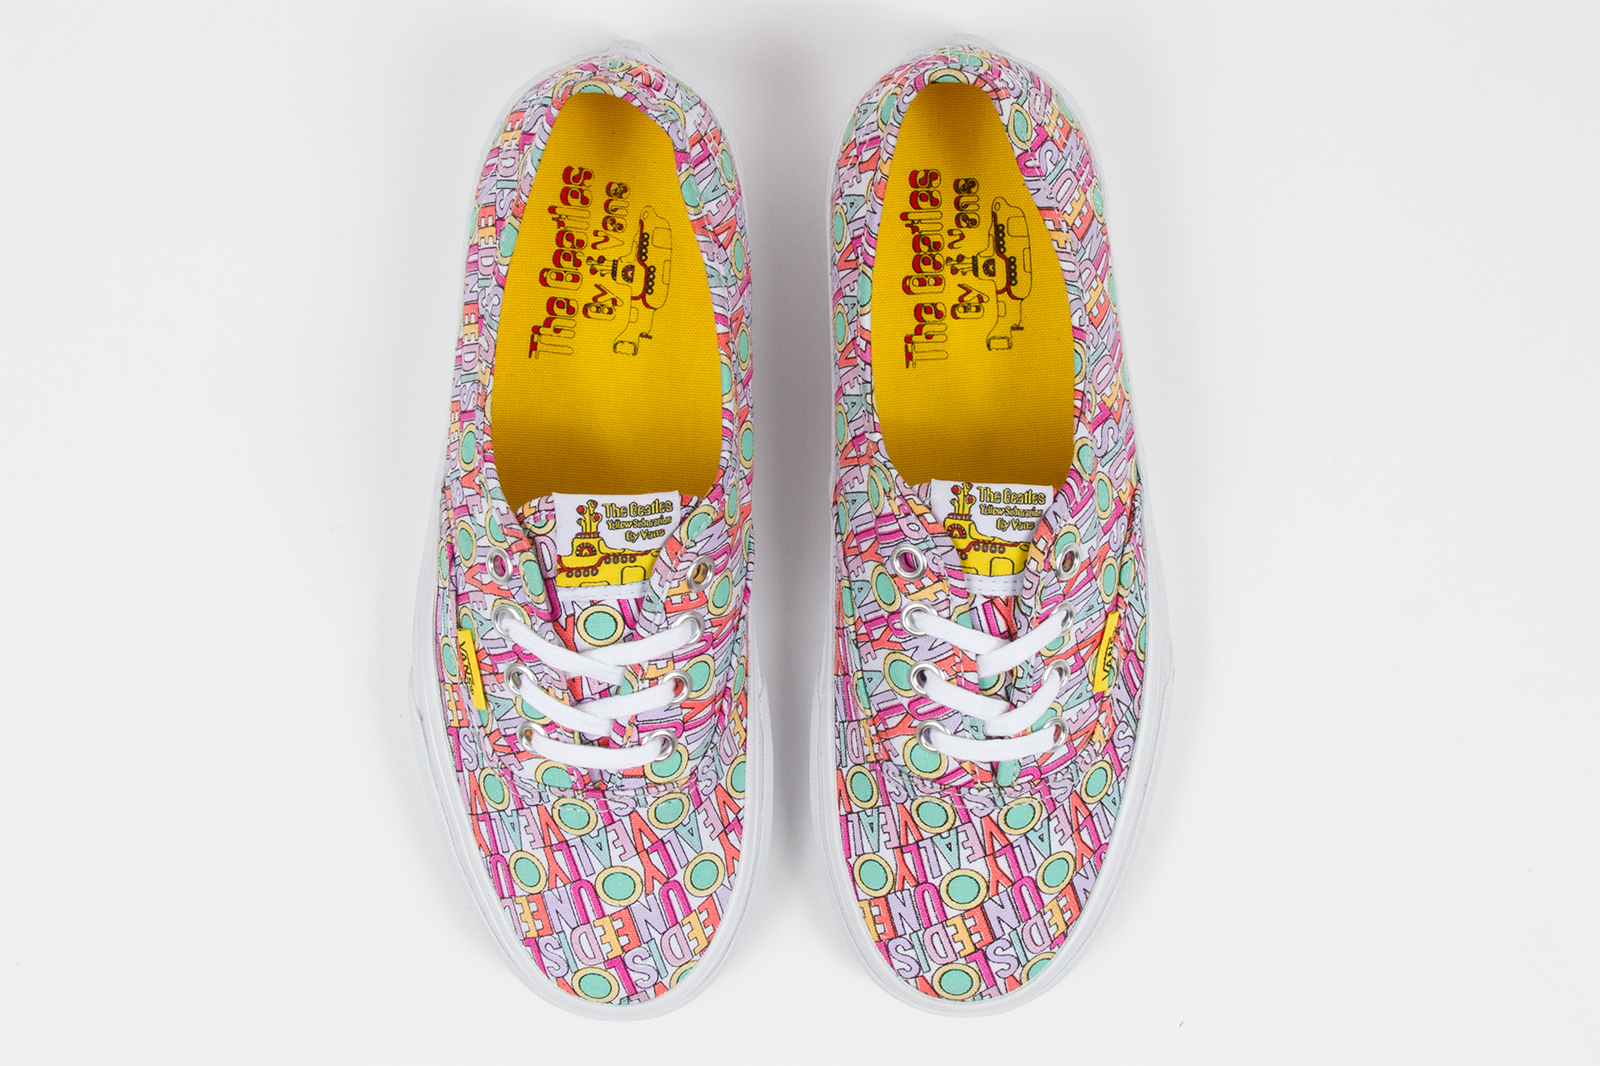 390291e1fe6ae8 The Beatles x Vans Yellow Submarine Capsule Collection releases March 1